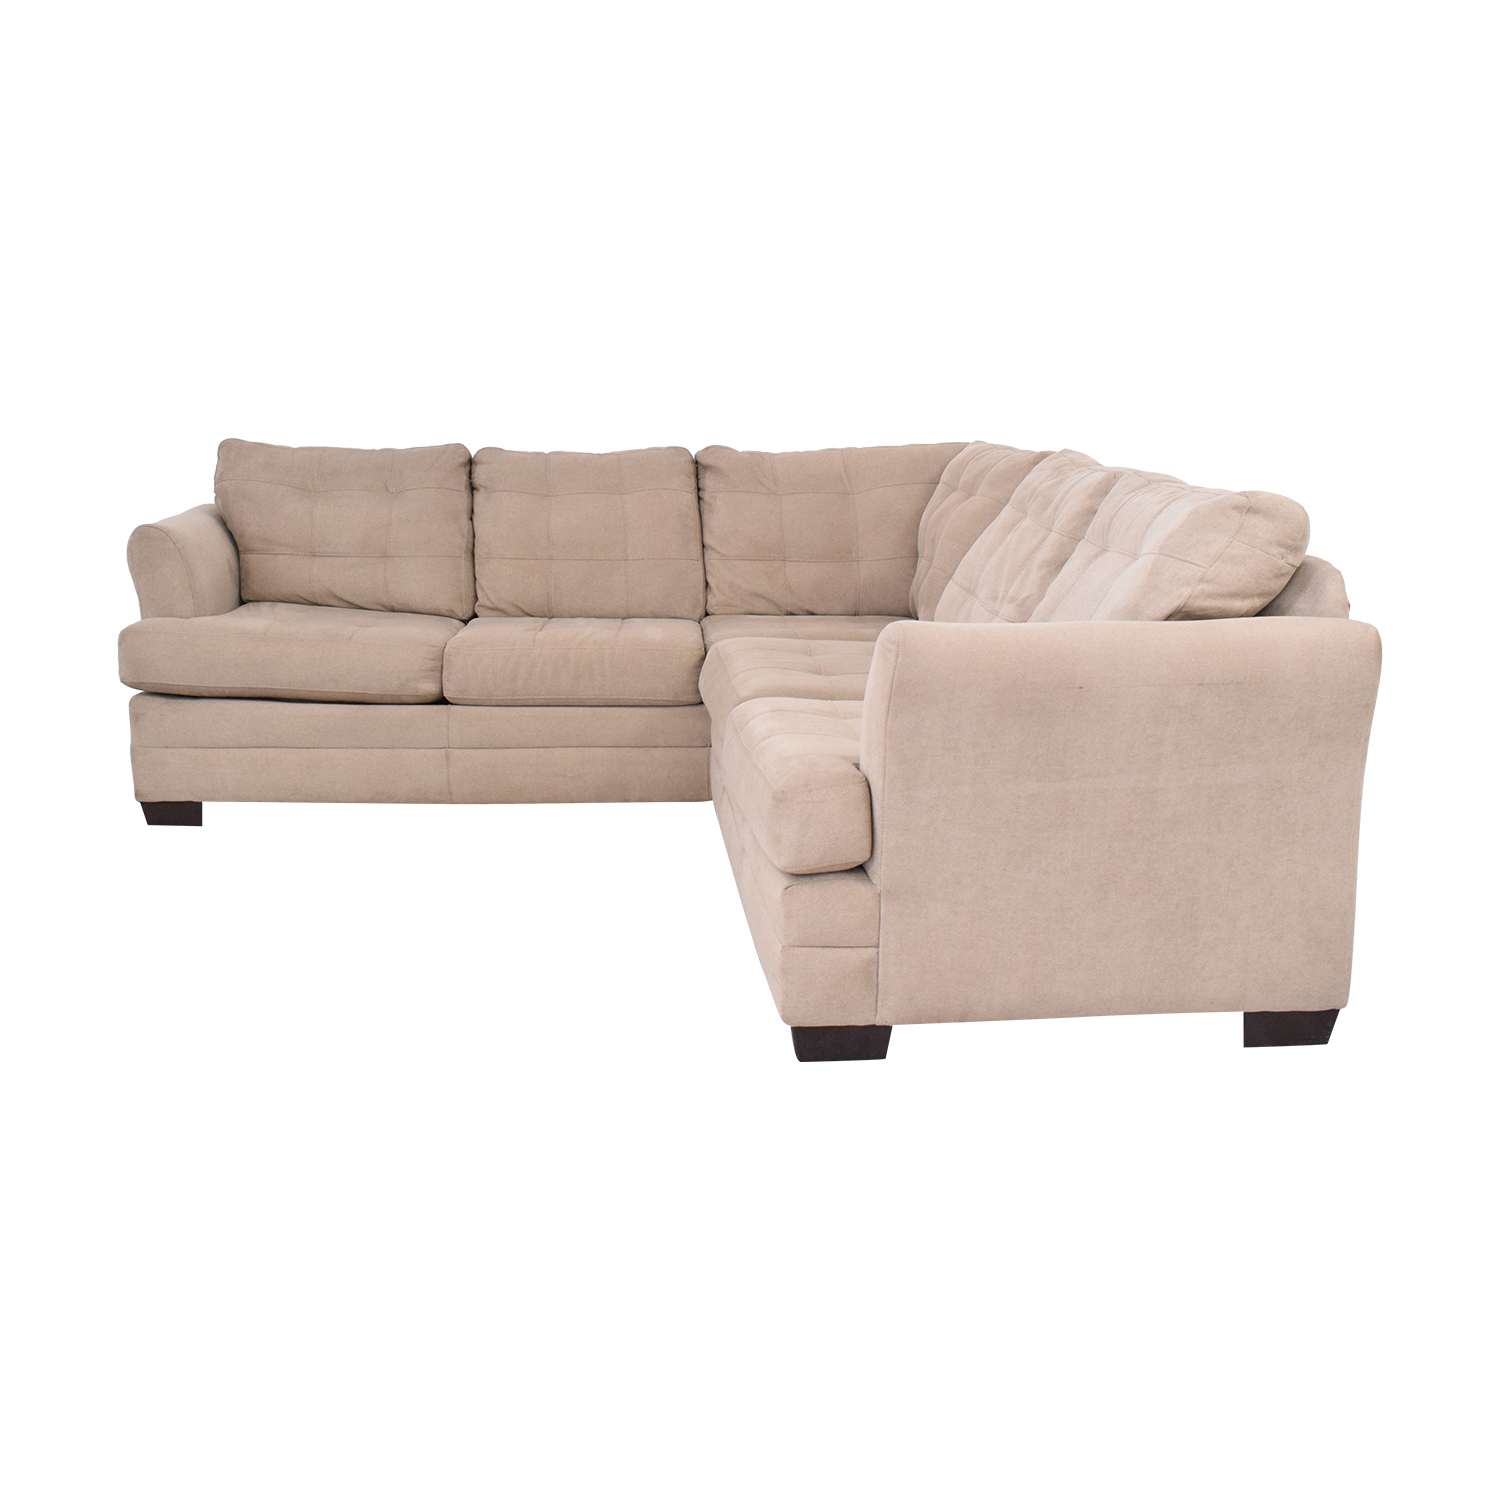 buy Raymour & Flanigan Hayden 2-Piece Sectional Sofa Raymour & Flanigan Sofas